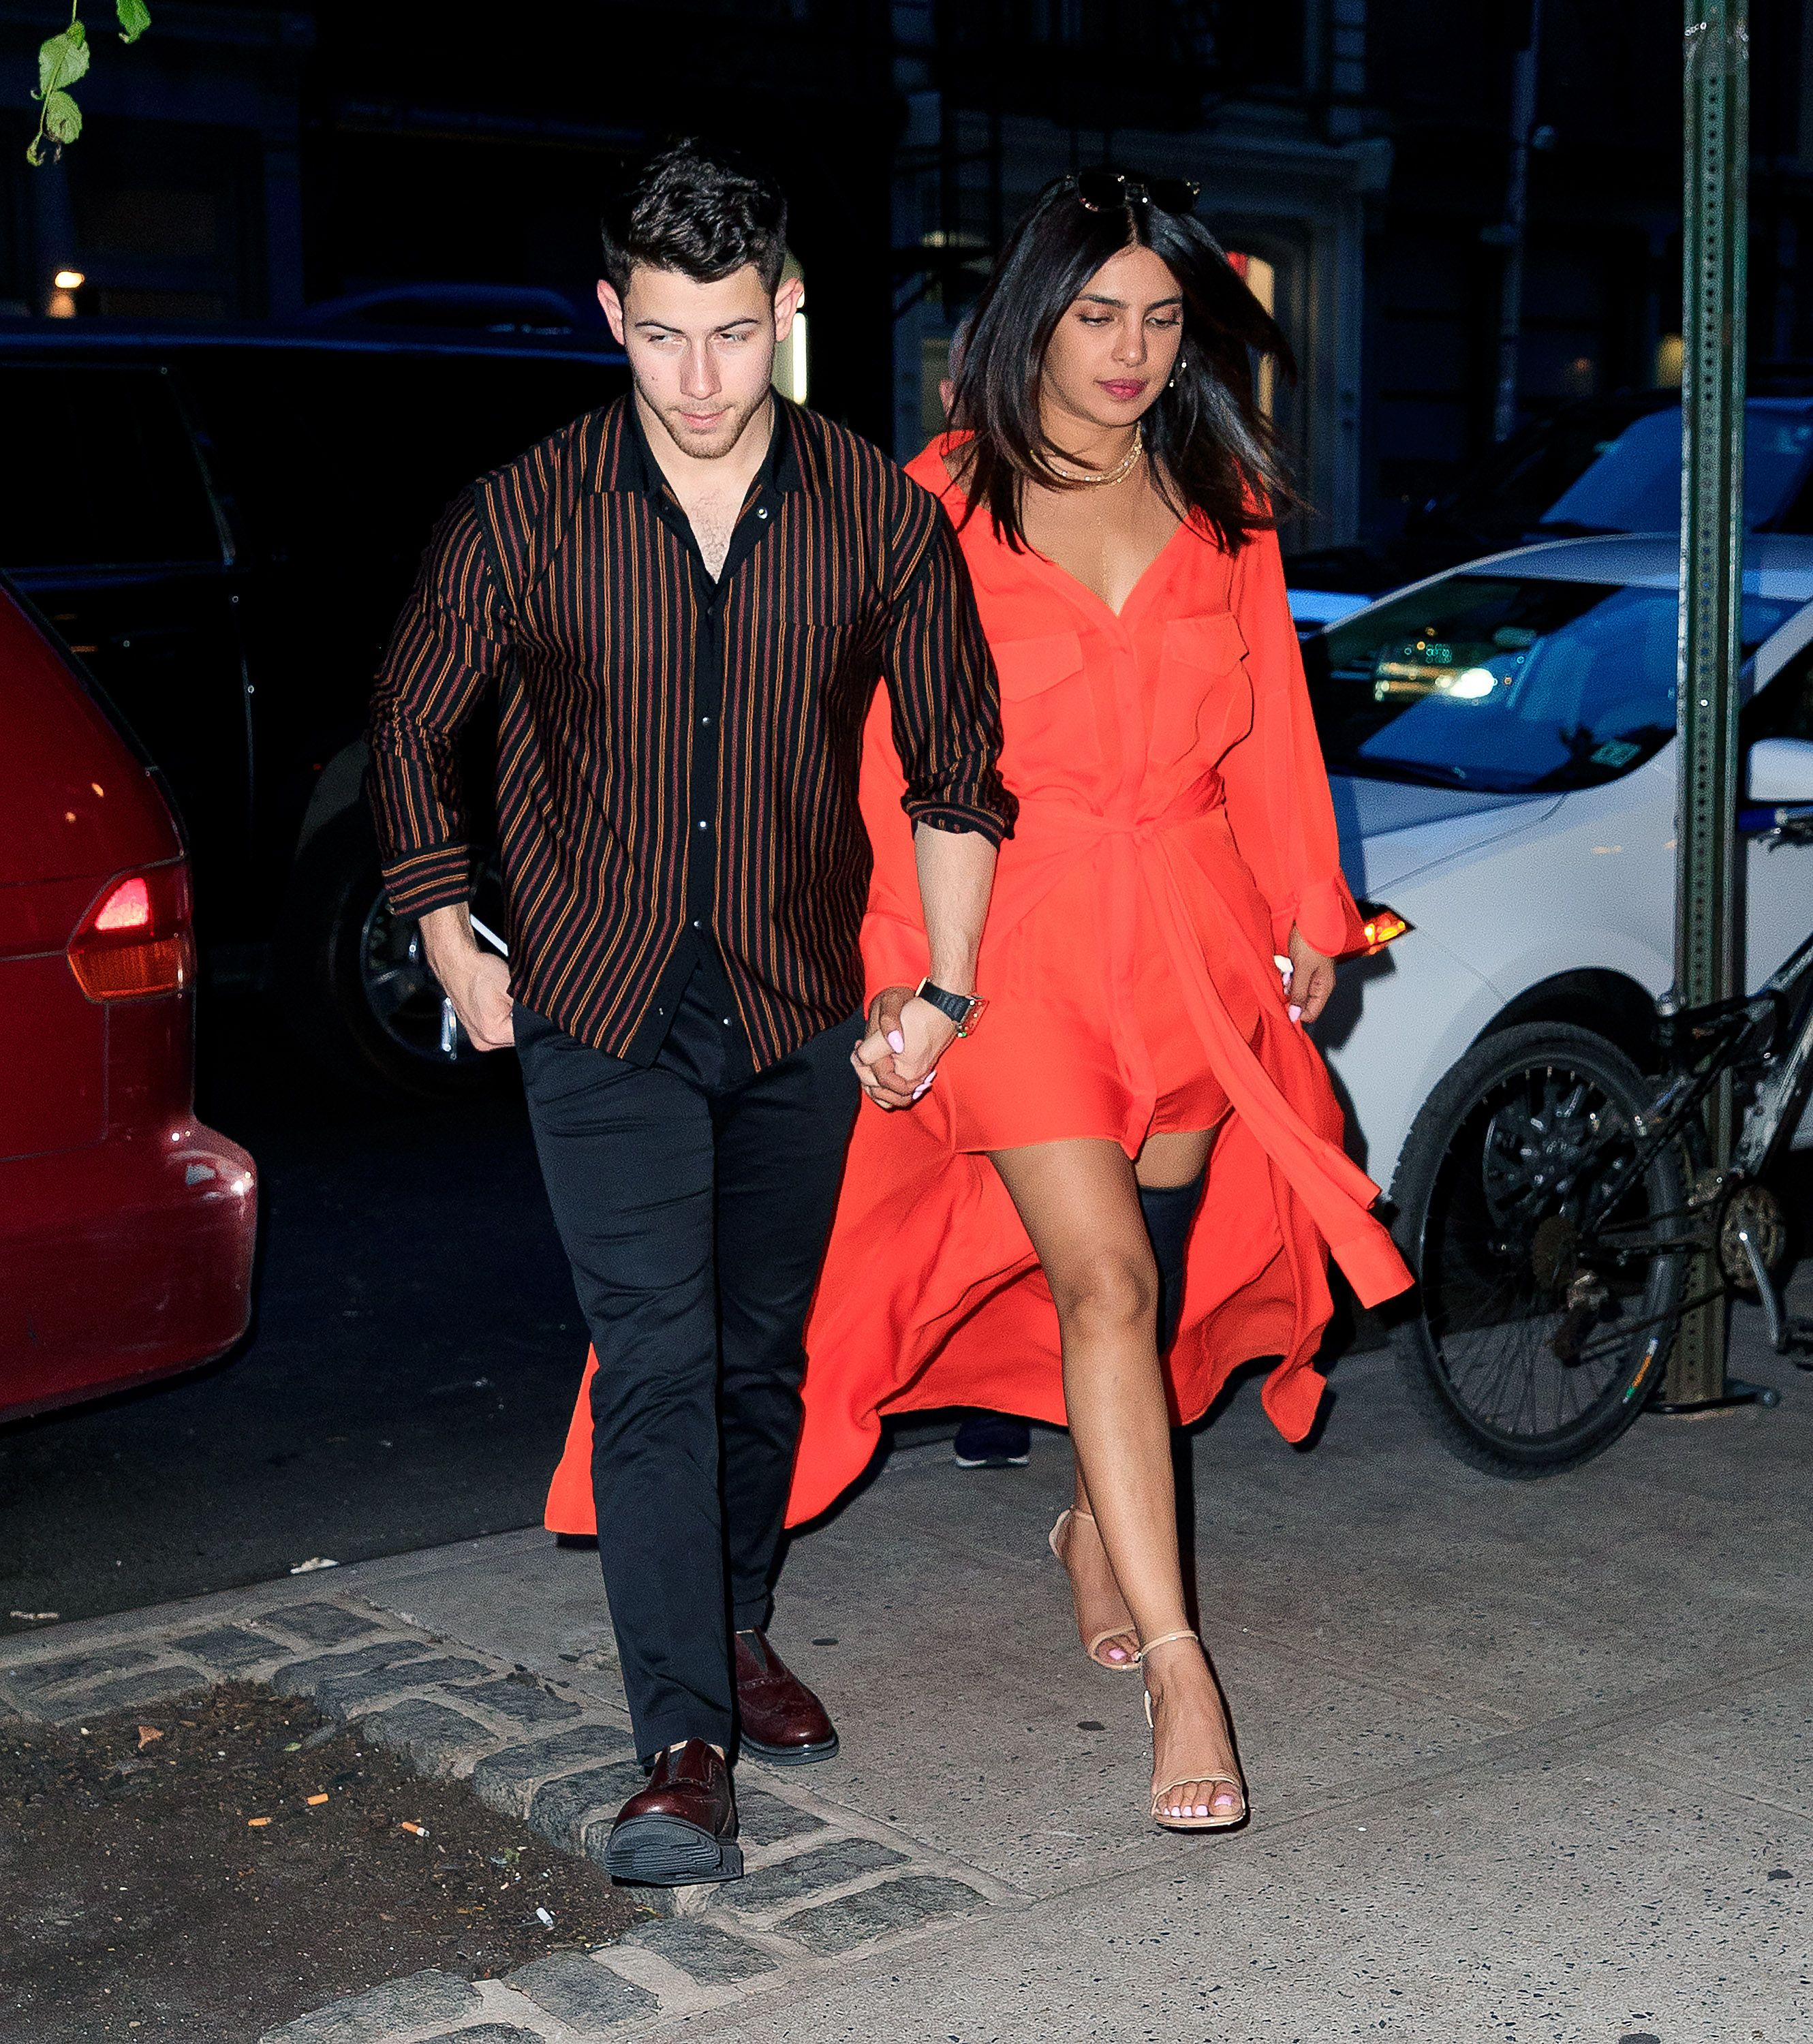 Priyanka Chopra Wears Orange Dress and Knee Brace For Date Night With Nick Jonas